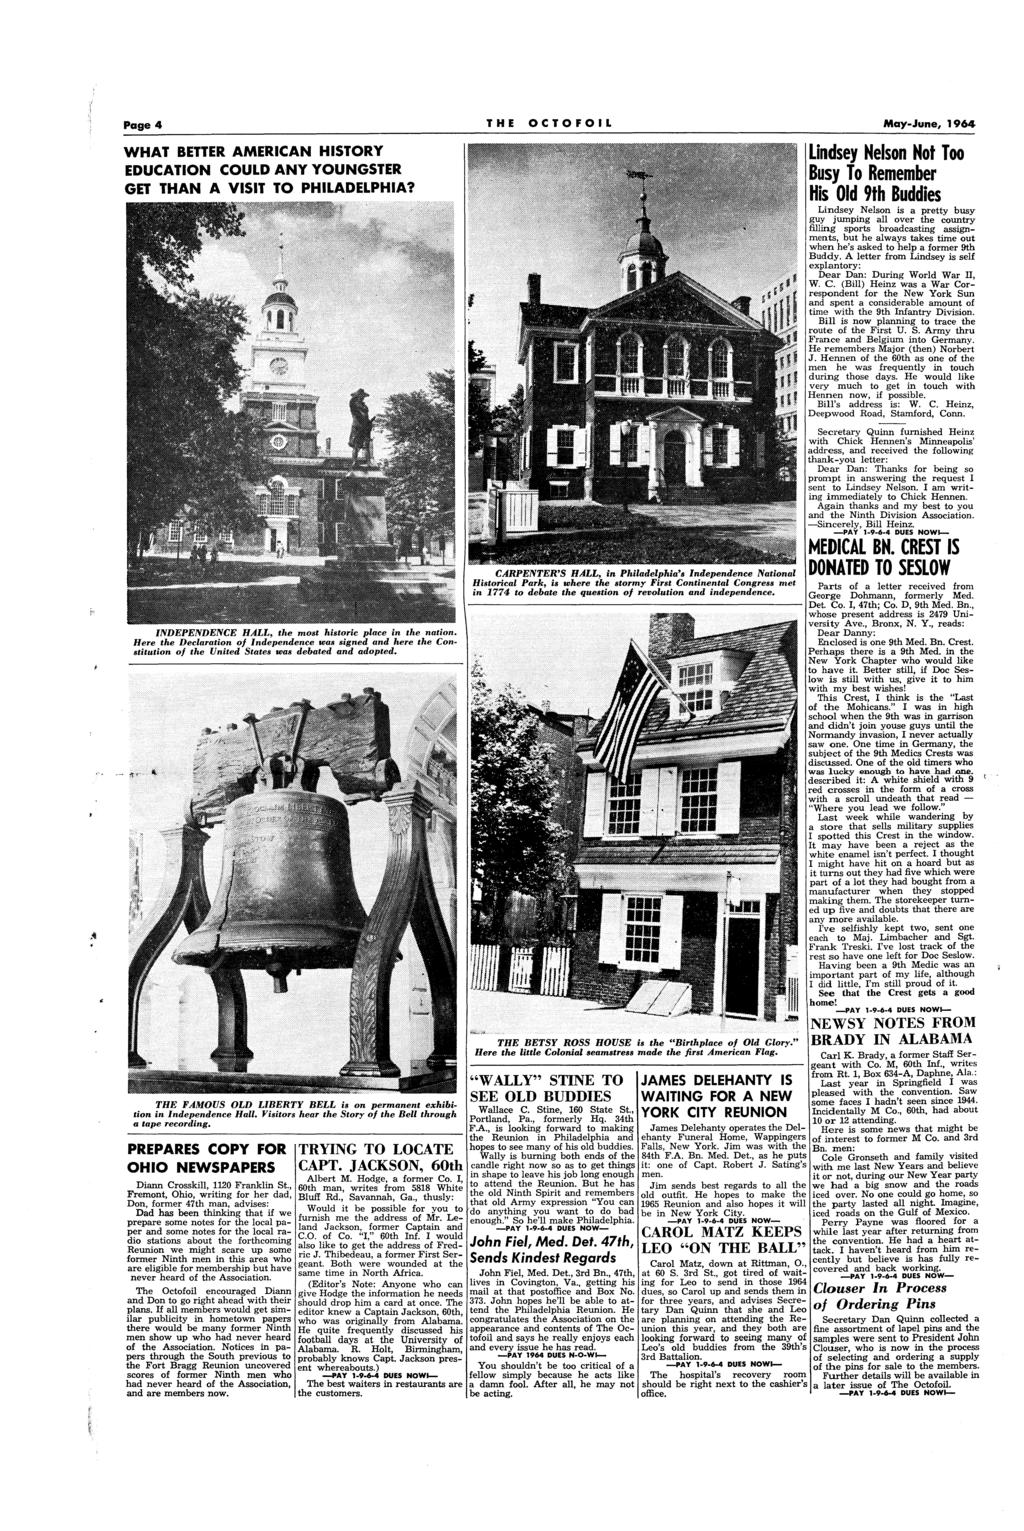 Page 4 THE OCTOFOIL May-June, 1964 WHAT BETTER AMERICAN HISTORY EDUCATION COULD A,NY YOUNGSTER GET THAN A VISIT TO PHILADELPHIA? THE FAMOUS OLD LIBERTY BELL s on permanent exhbton n Independence Hall.